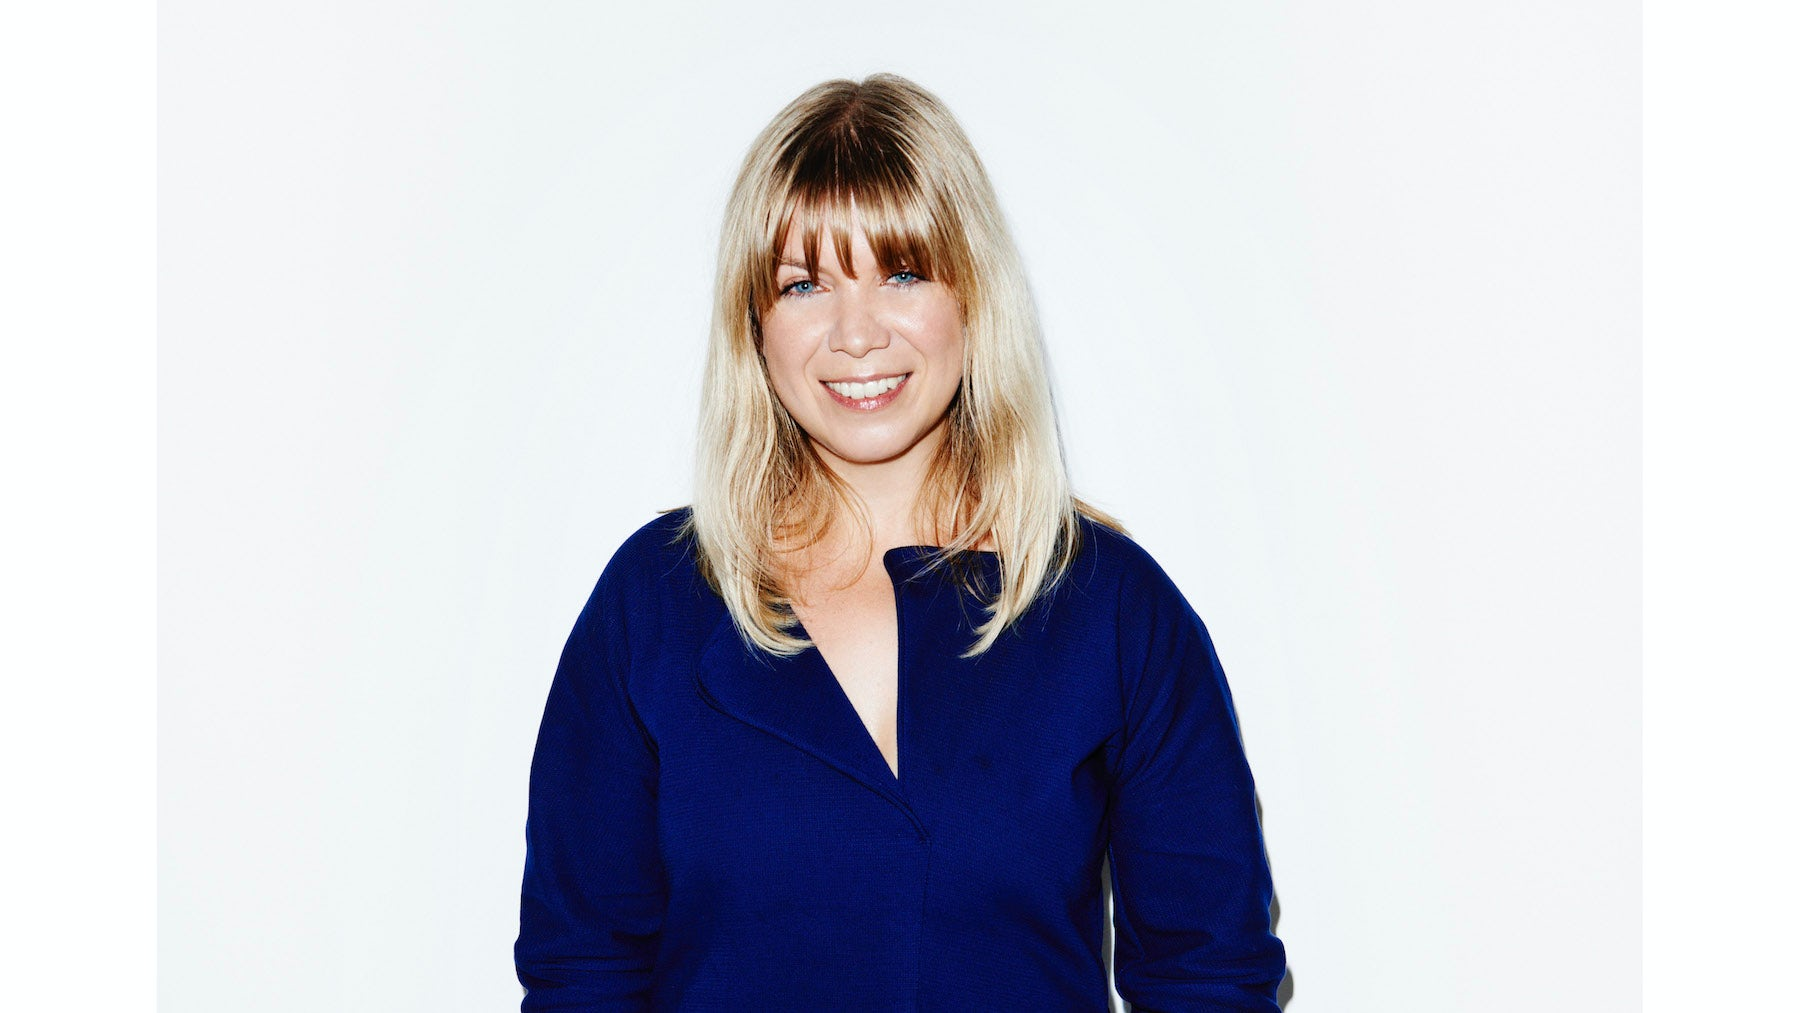 Chief brand officer at MatchesFashion, Jess Christie | Source: Courtesy